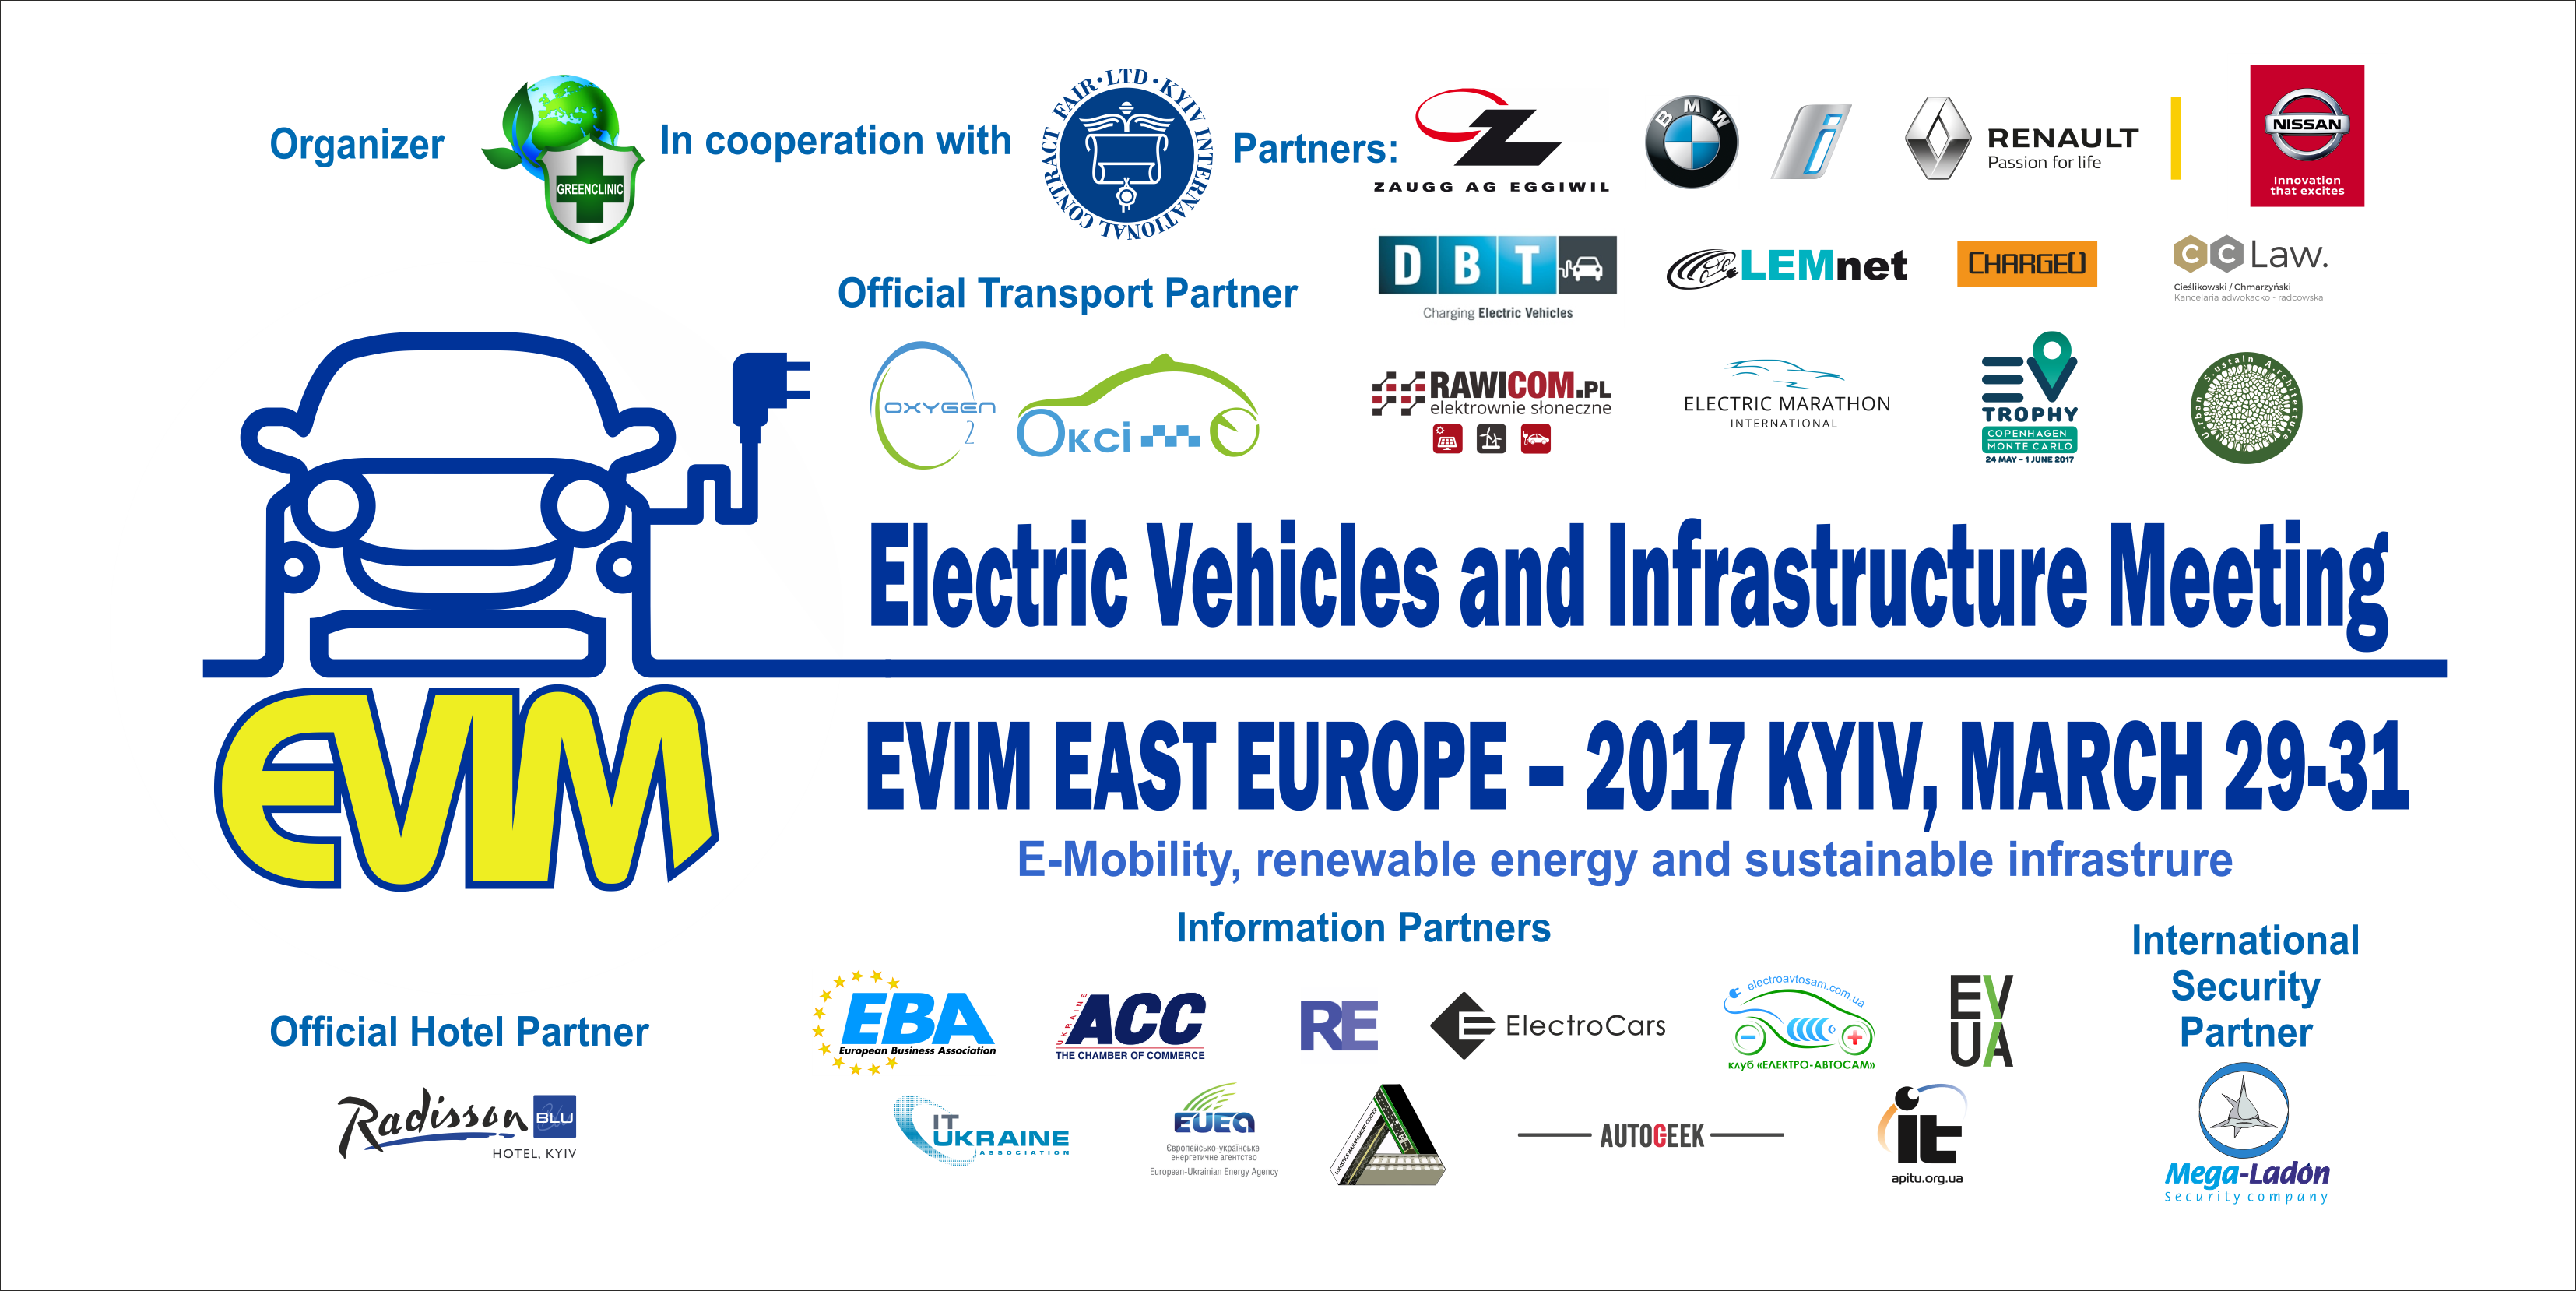 What will be discussed in the expert panel sessions of EVIM East Europe – 2017 International Summit?